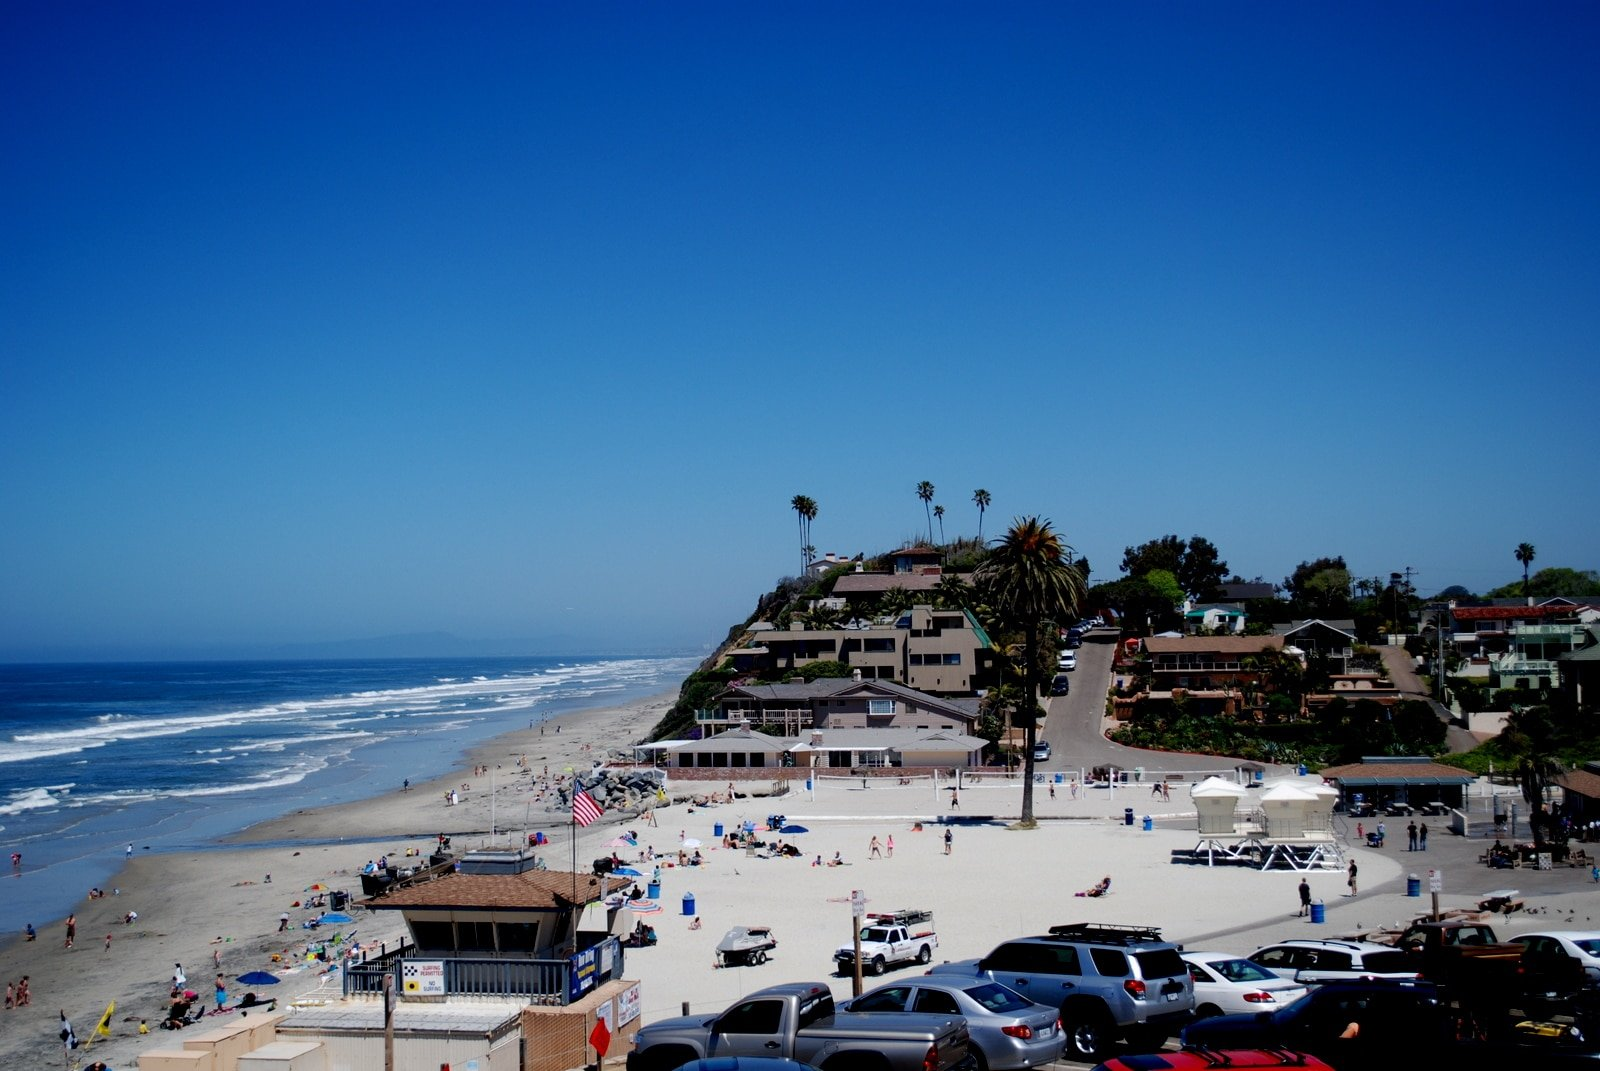 Moonlight Beach in Encinitas, California